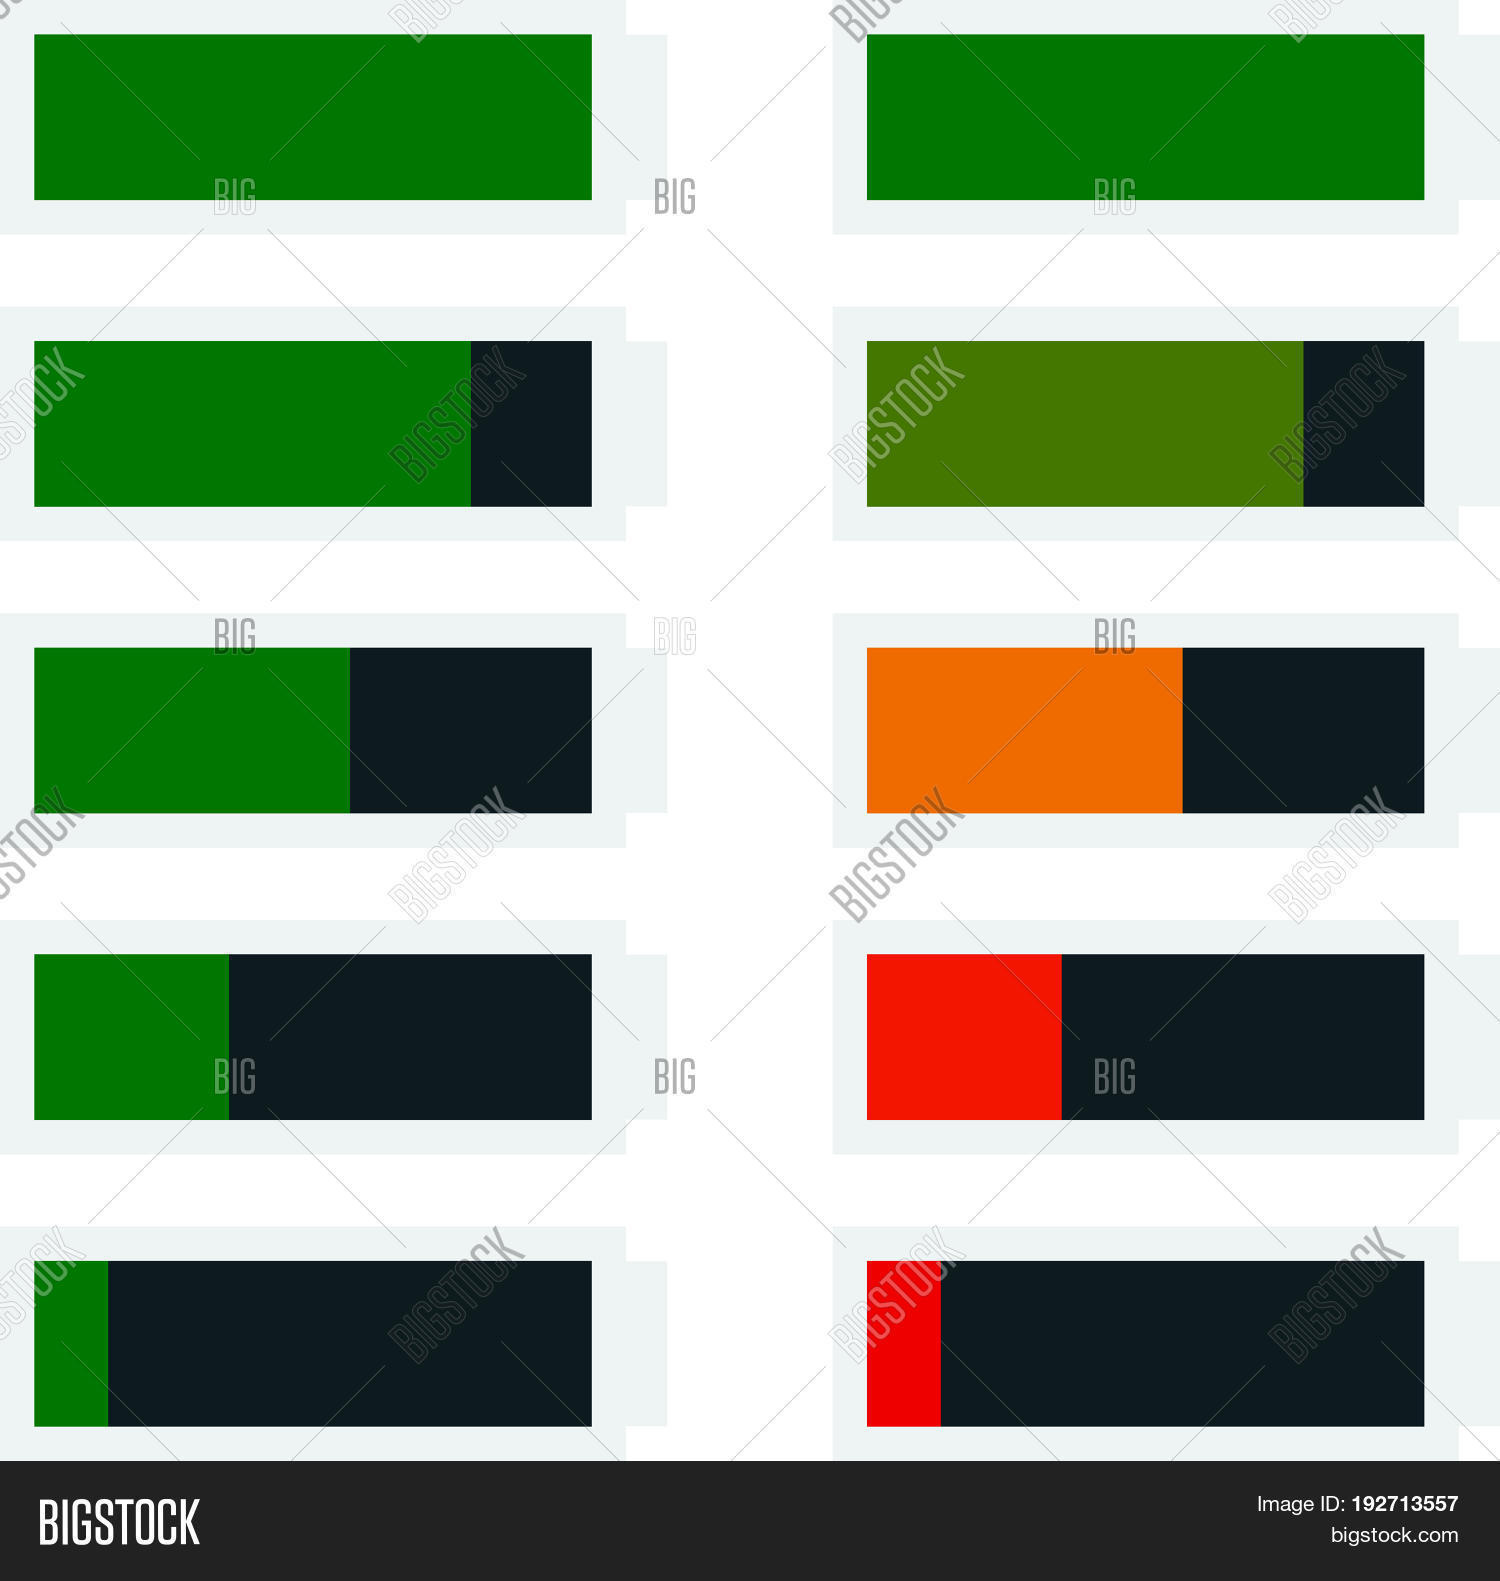 Battery Level Vector Photo Free Trial Bigstock Indicator Shape Template In Flat Style